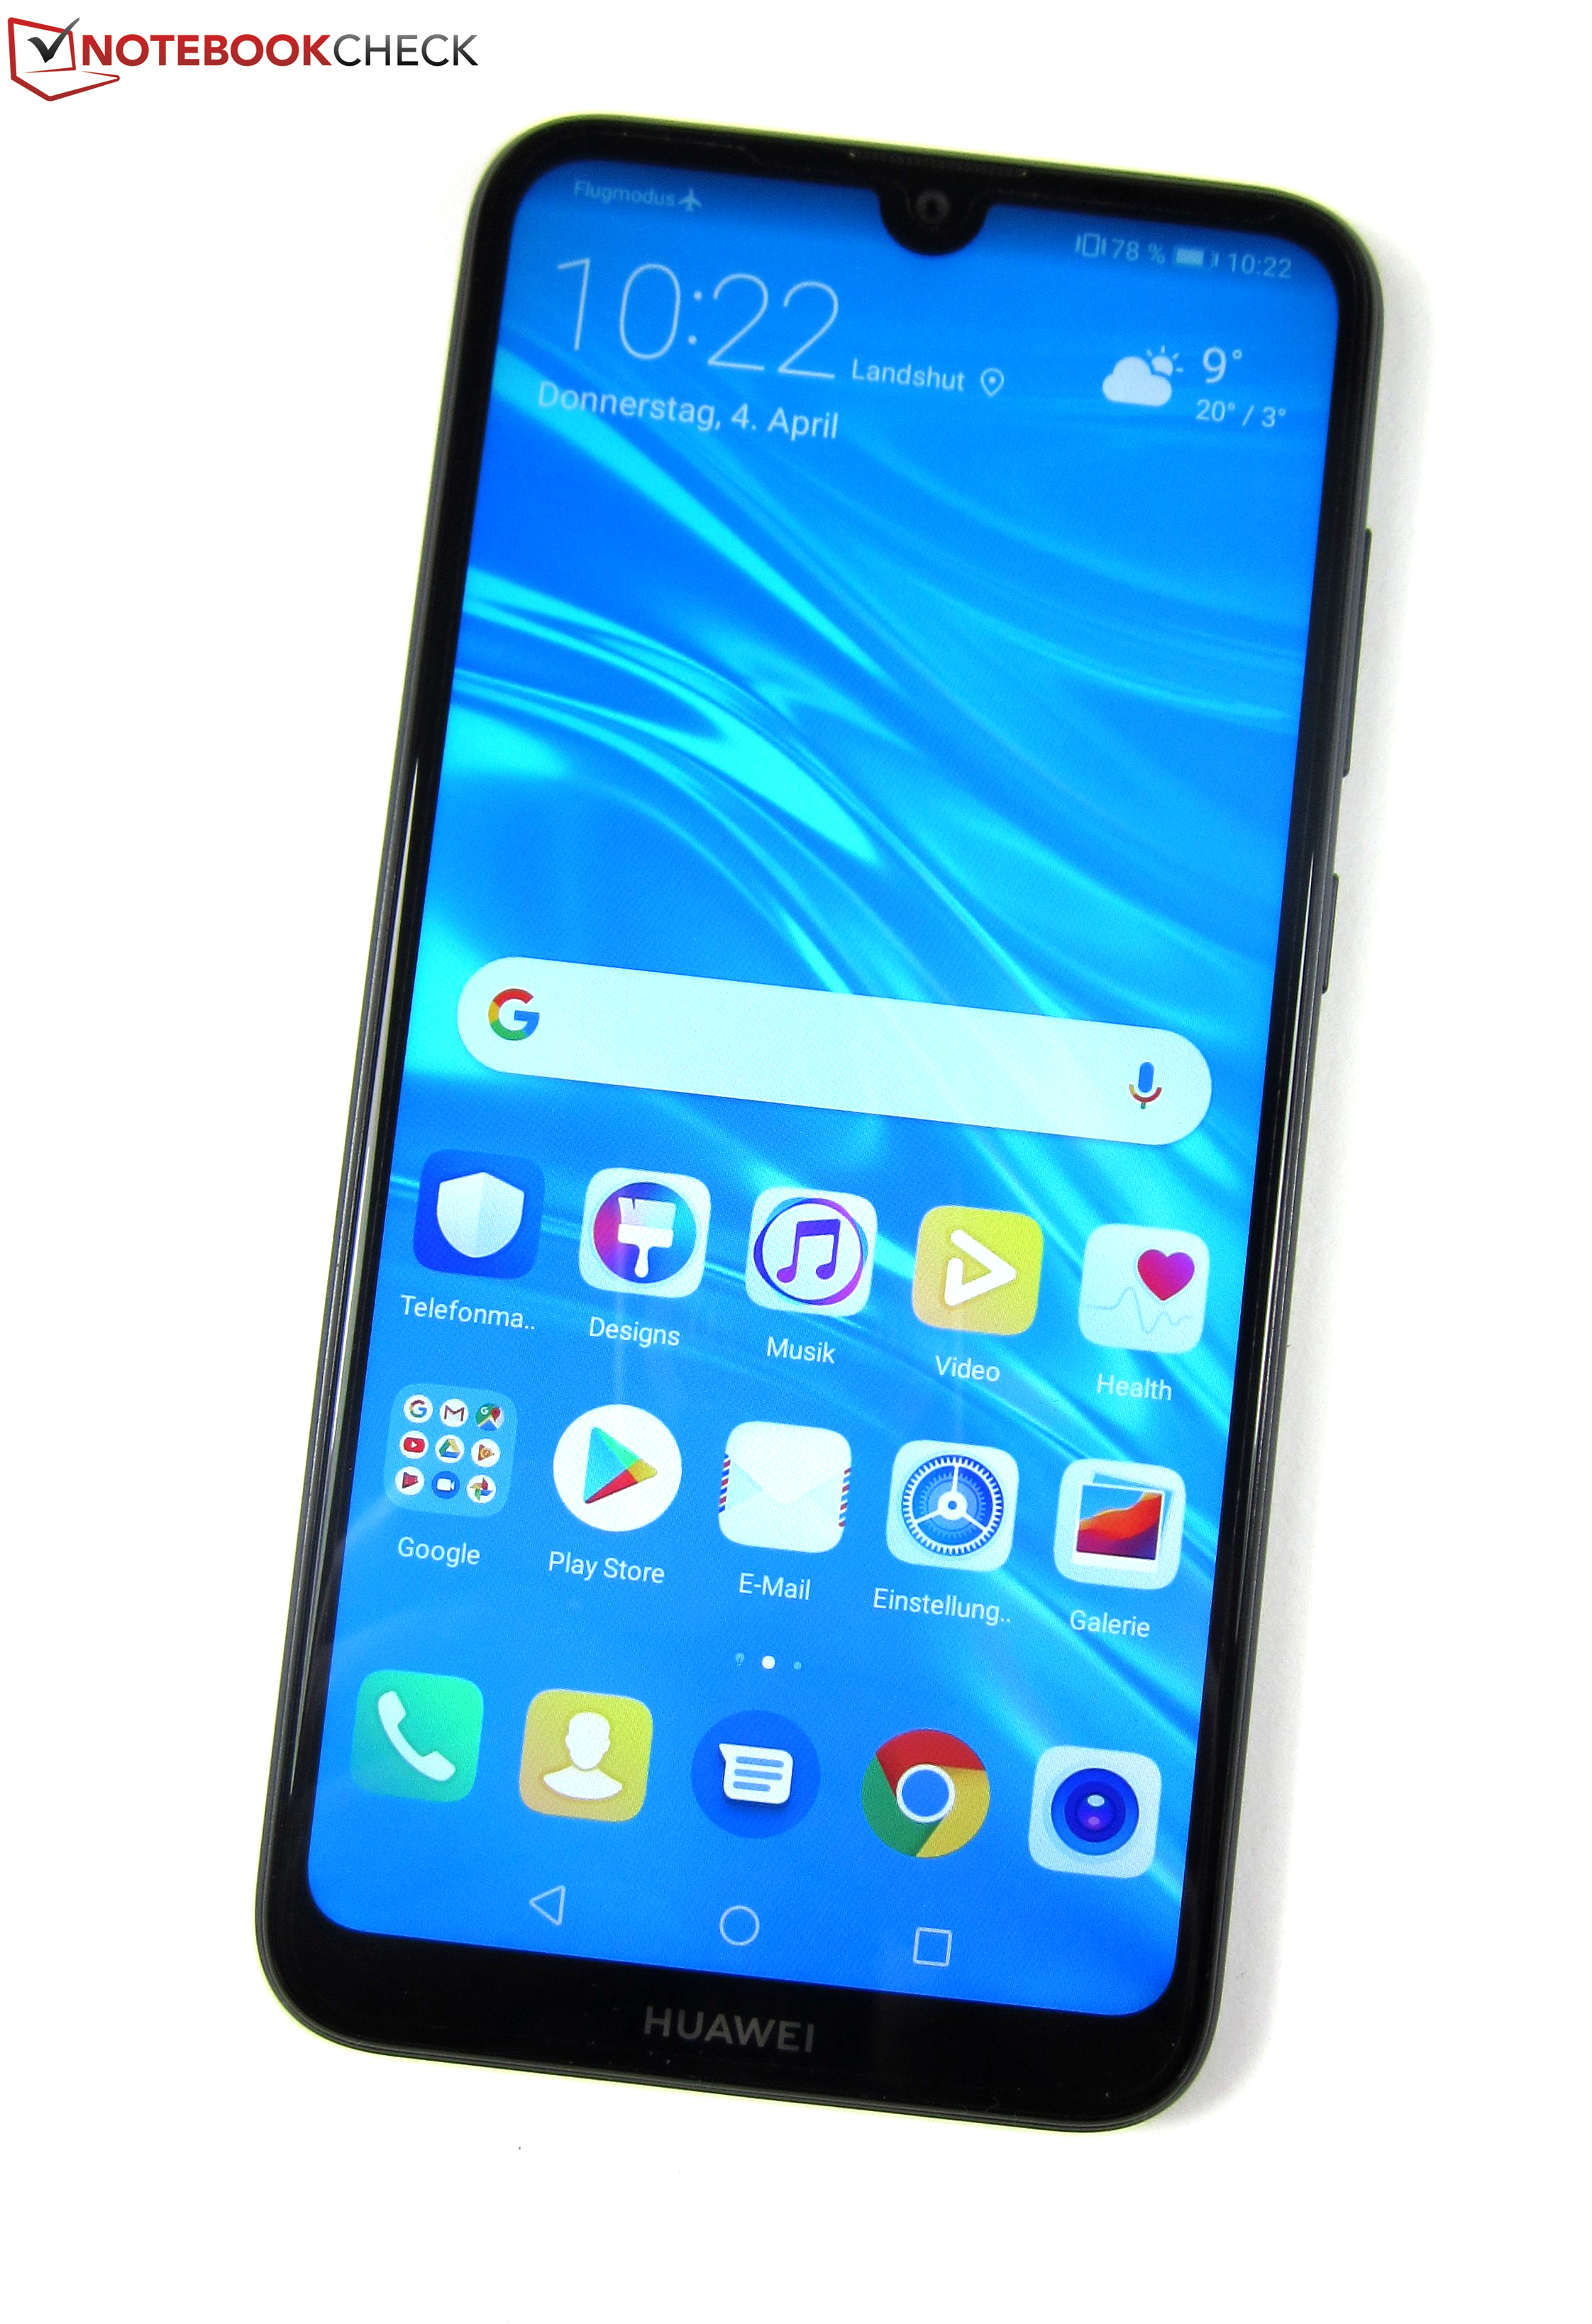 Huawei Y7 2019 Smartphone Review - NotebookCheck net Reviews